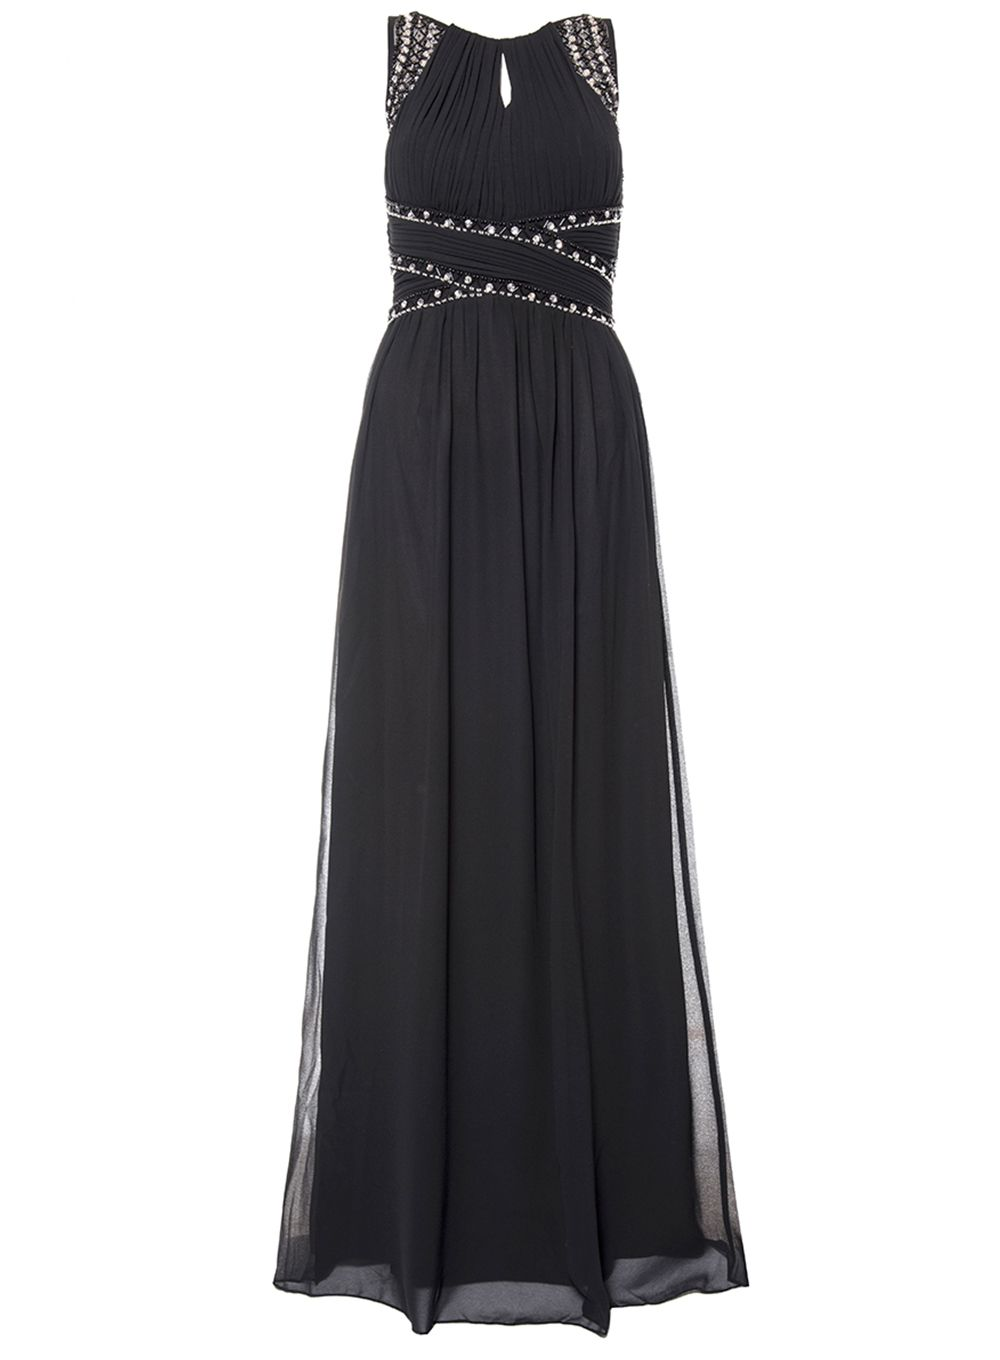 Quiz Black Chiffon Embellished Maxi Dress, Black